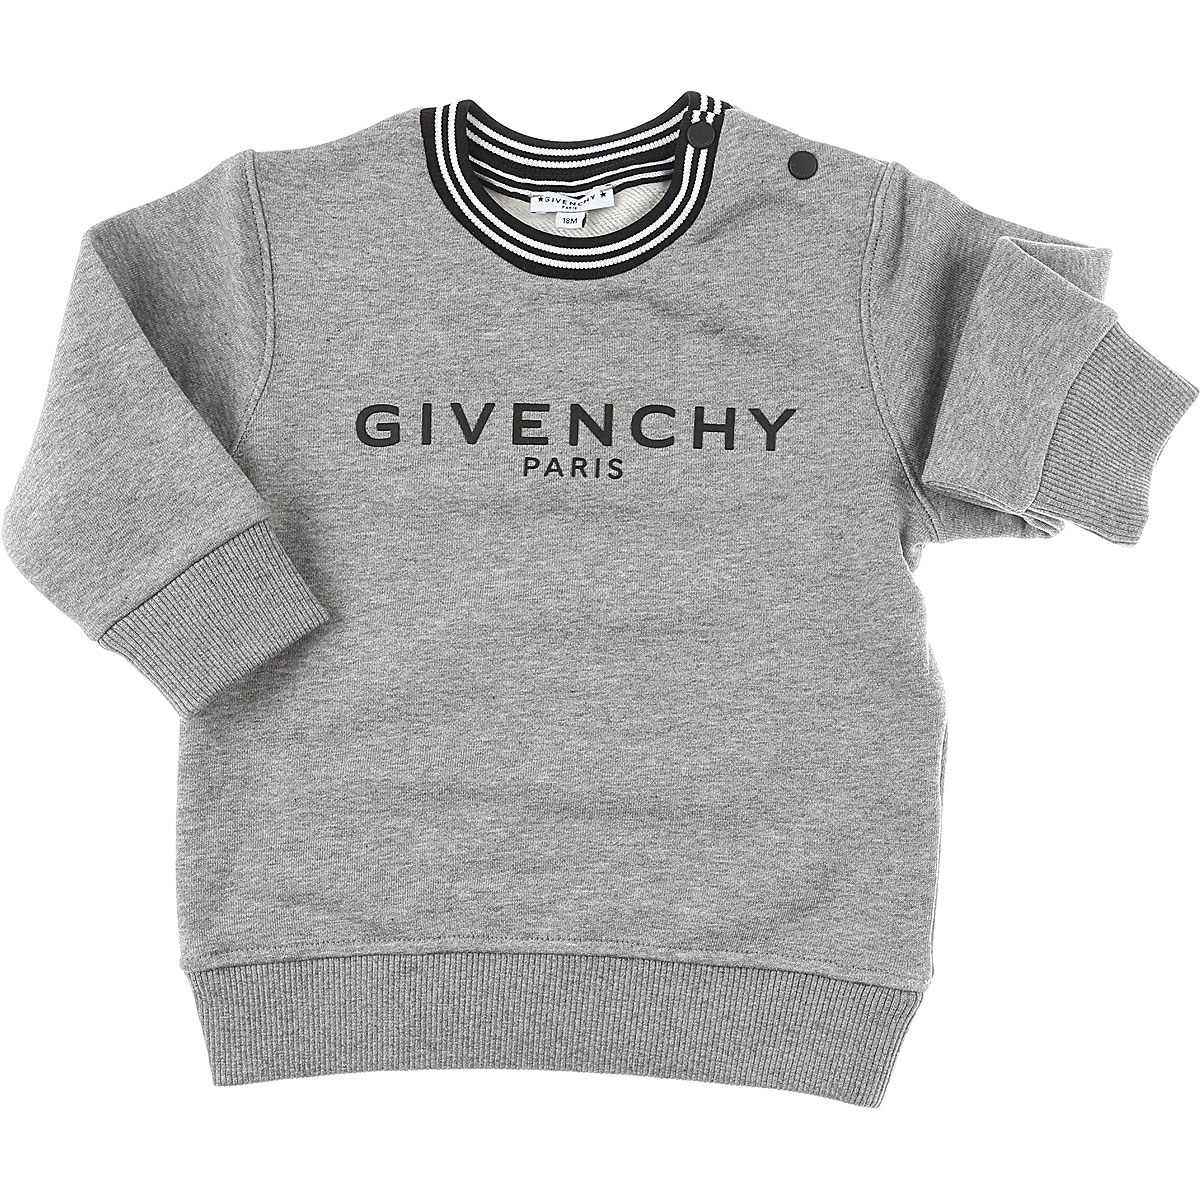 Givenchy Baby Sweatshirts & Hoodies for Boys On Sale, Grey, Cotton, 2019, 12 M 18M 3Y